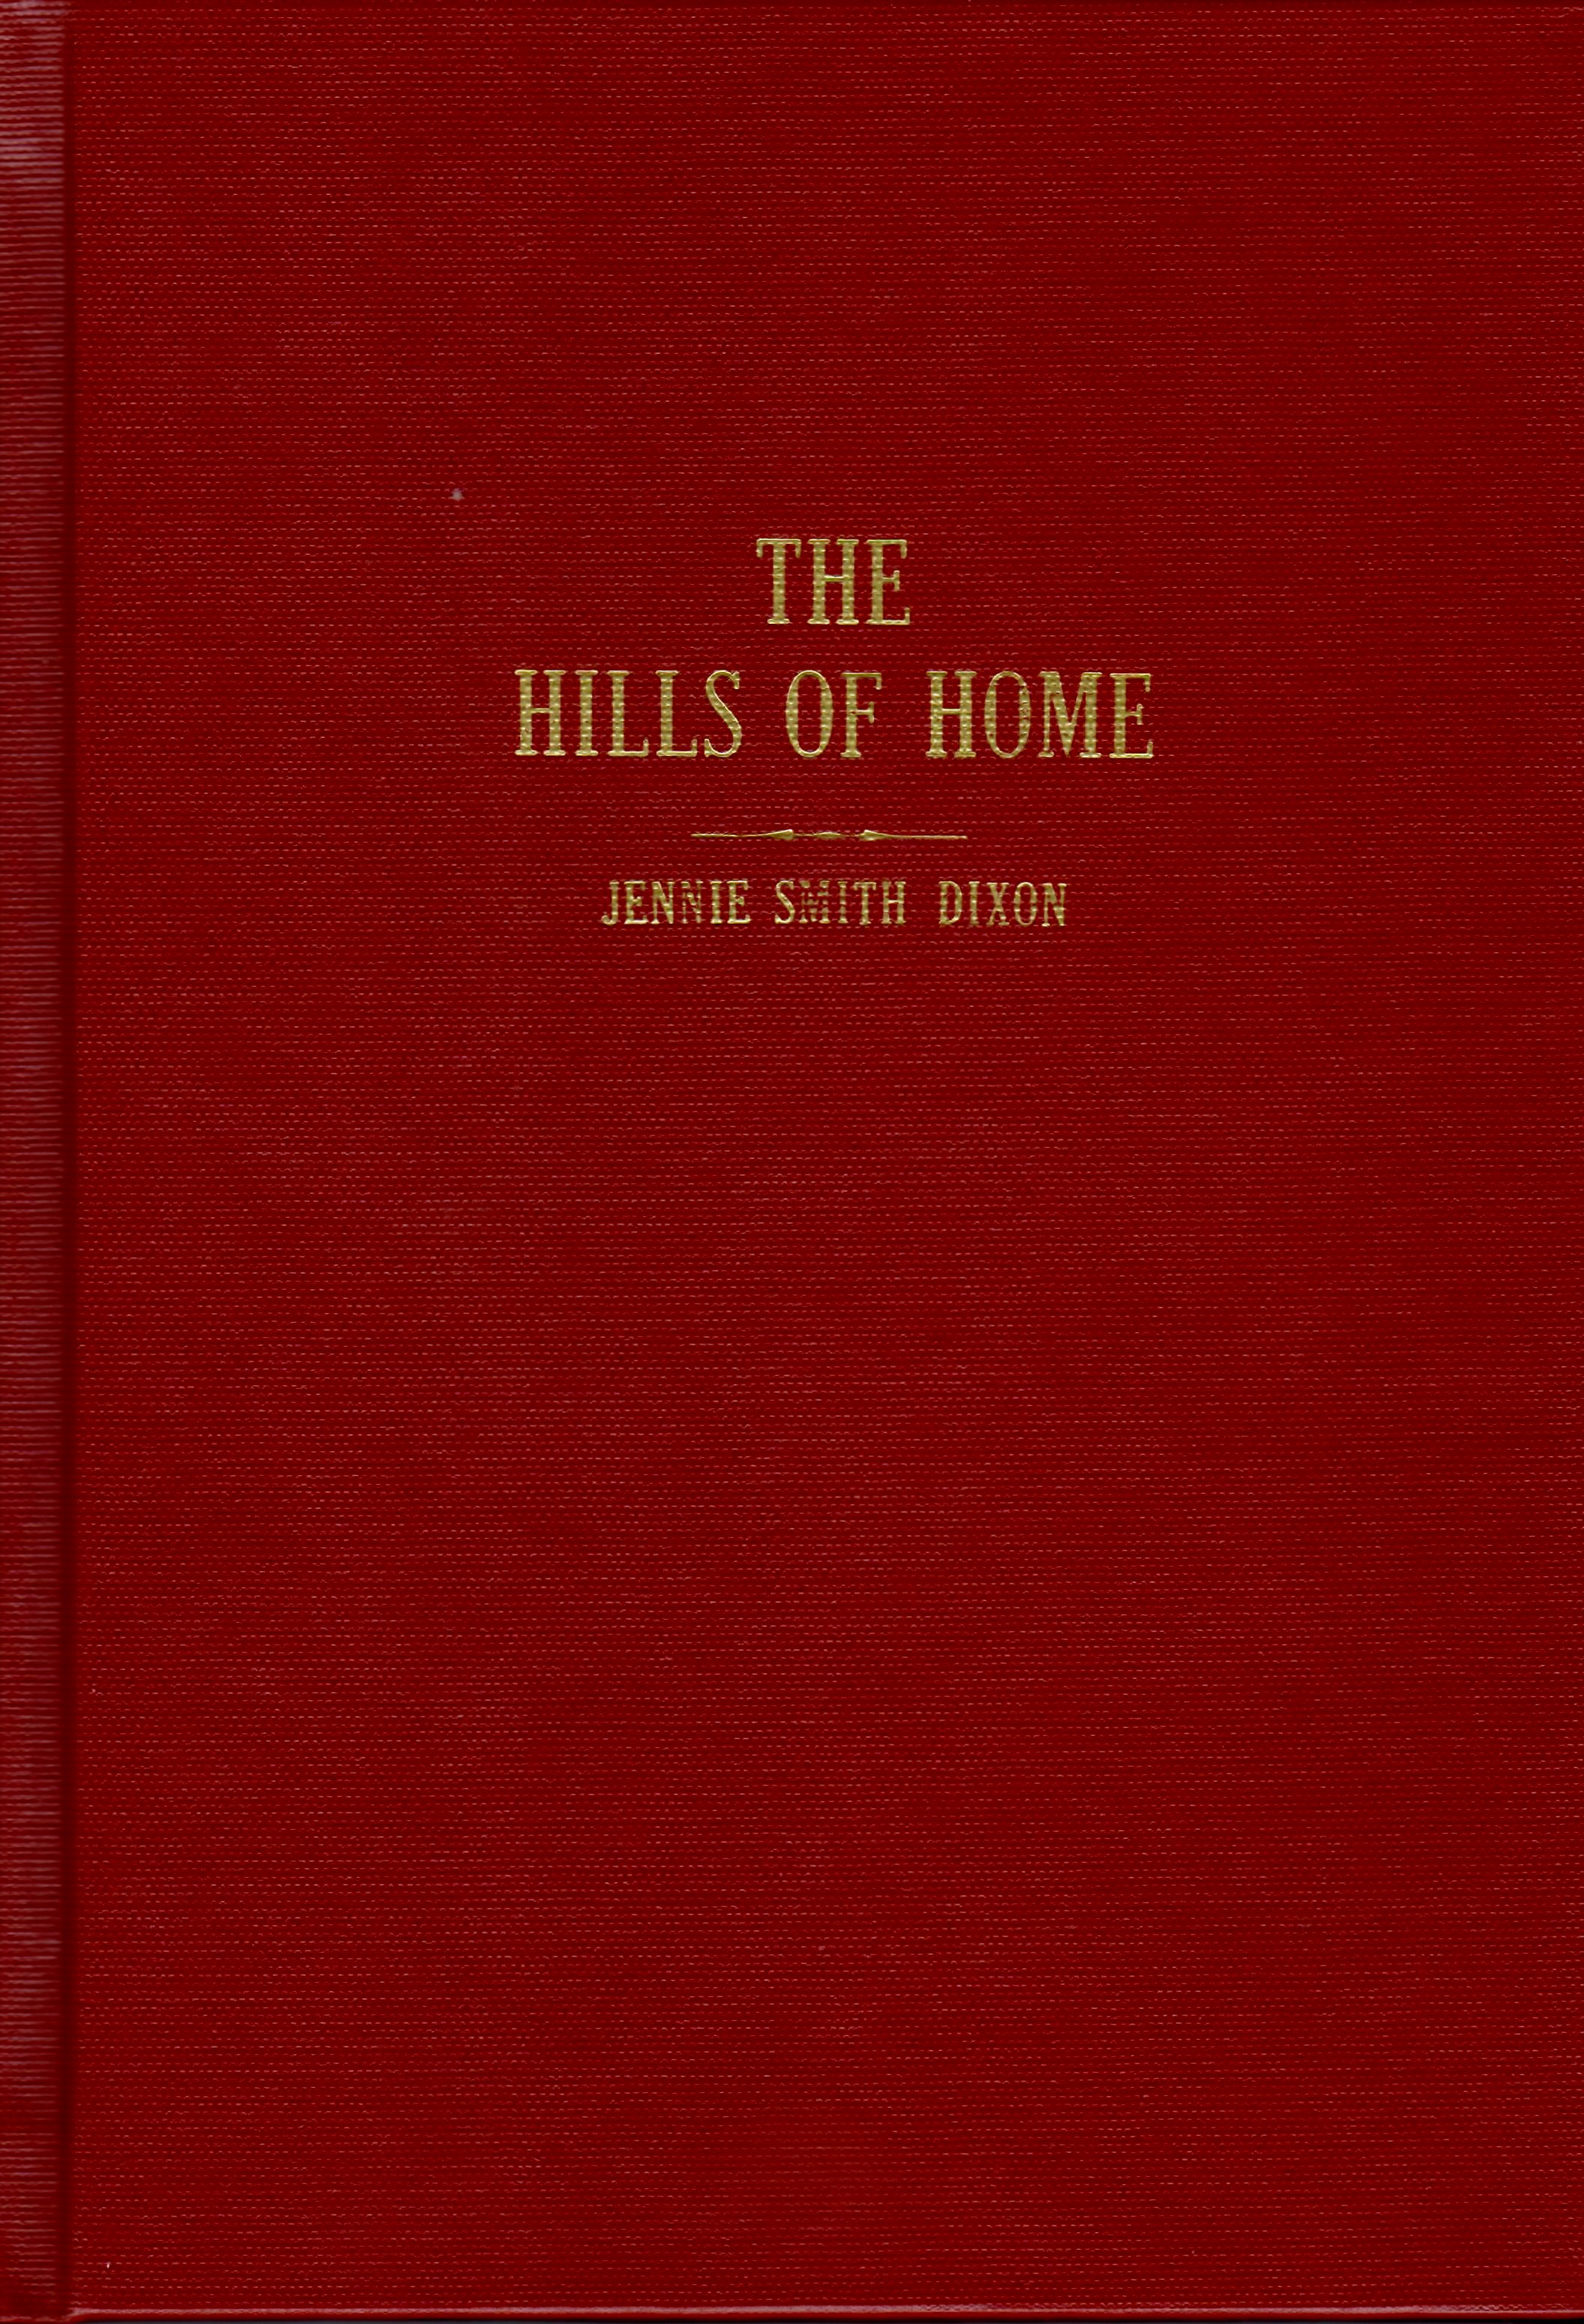 THE HILLS OF HOME - By Jennie Smith Dixon